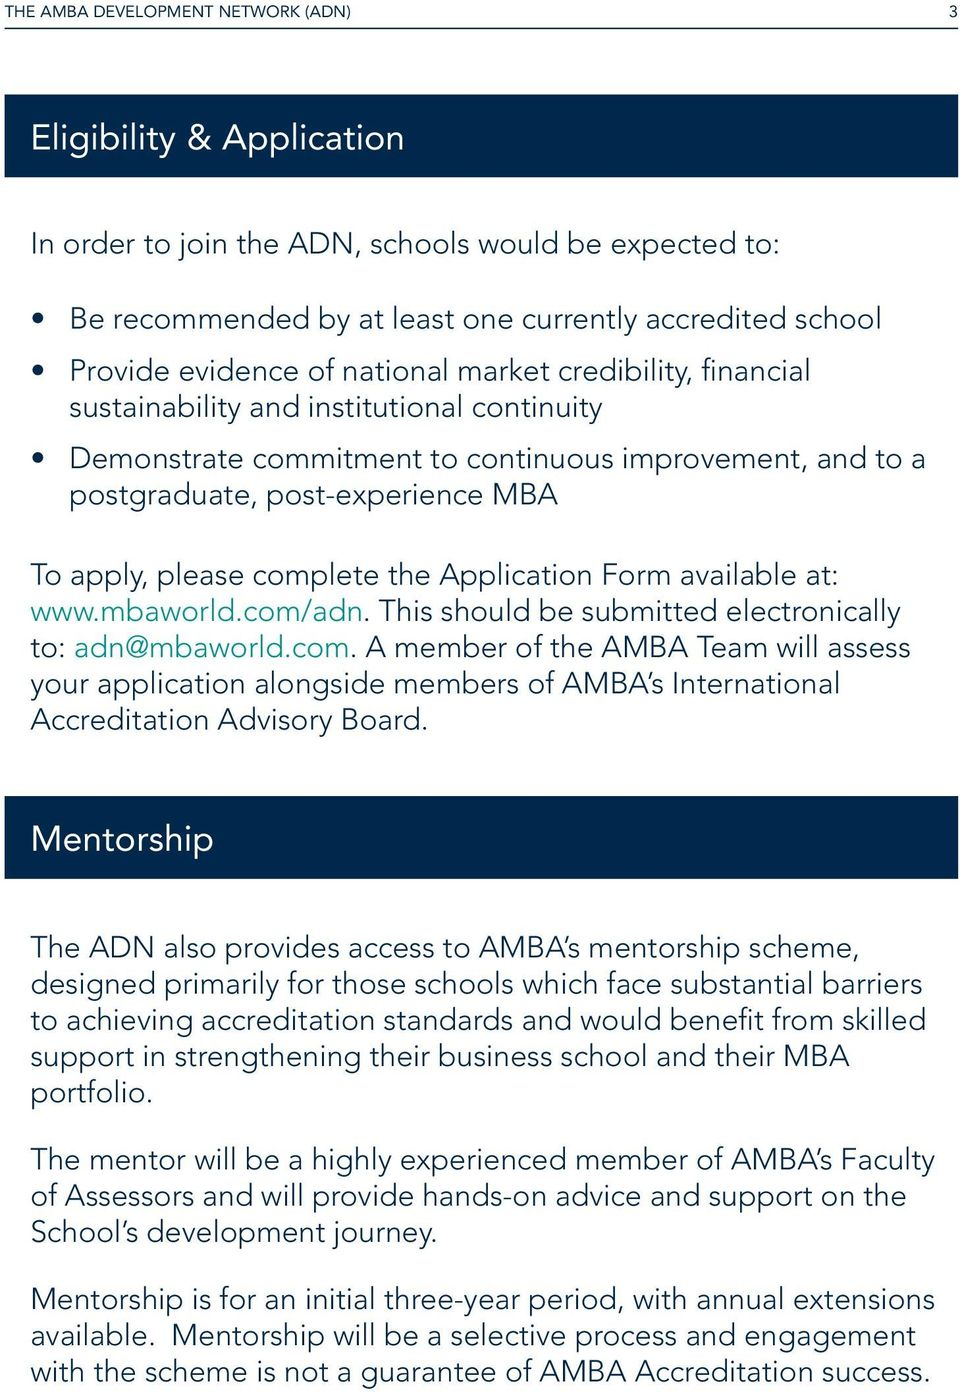 complete the Application Form available at: www.mbaworld.com/adn. This should be submitted electronically to: adn@mbaworld.com. A member of the AMBA Team will assess your application alongside members of AMBA s International Accreditation Advisory Board.